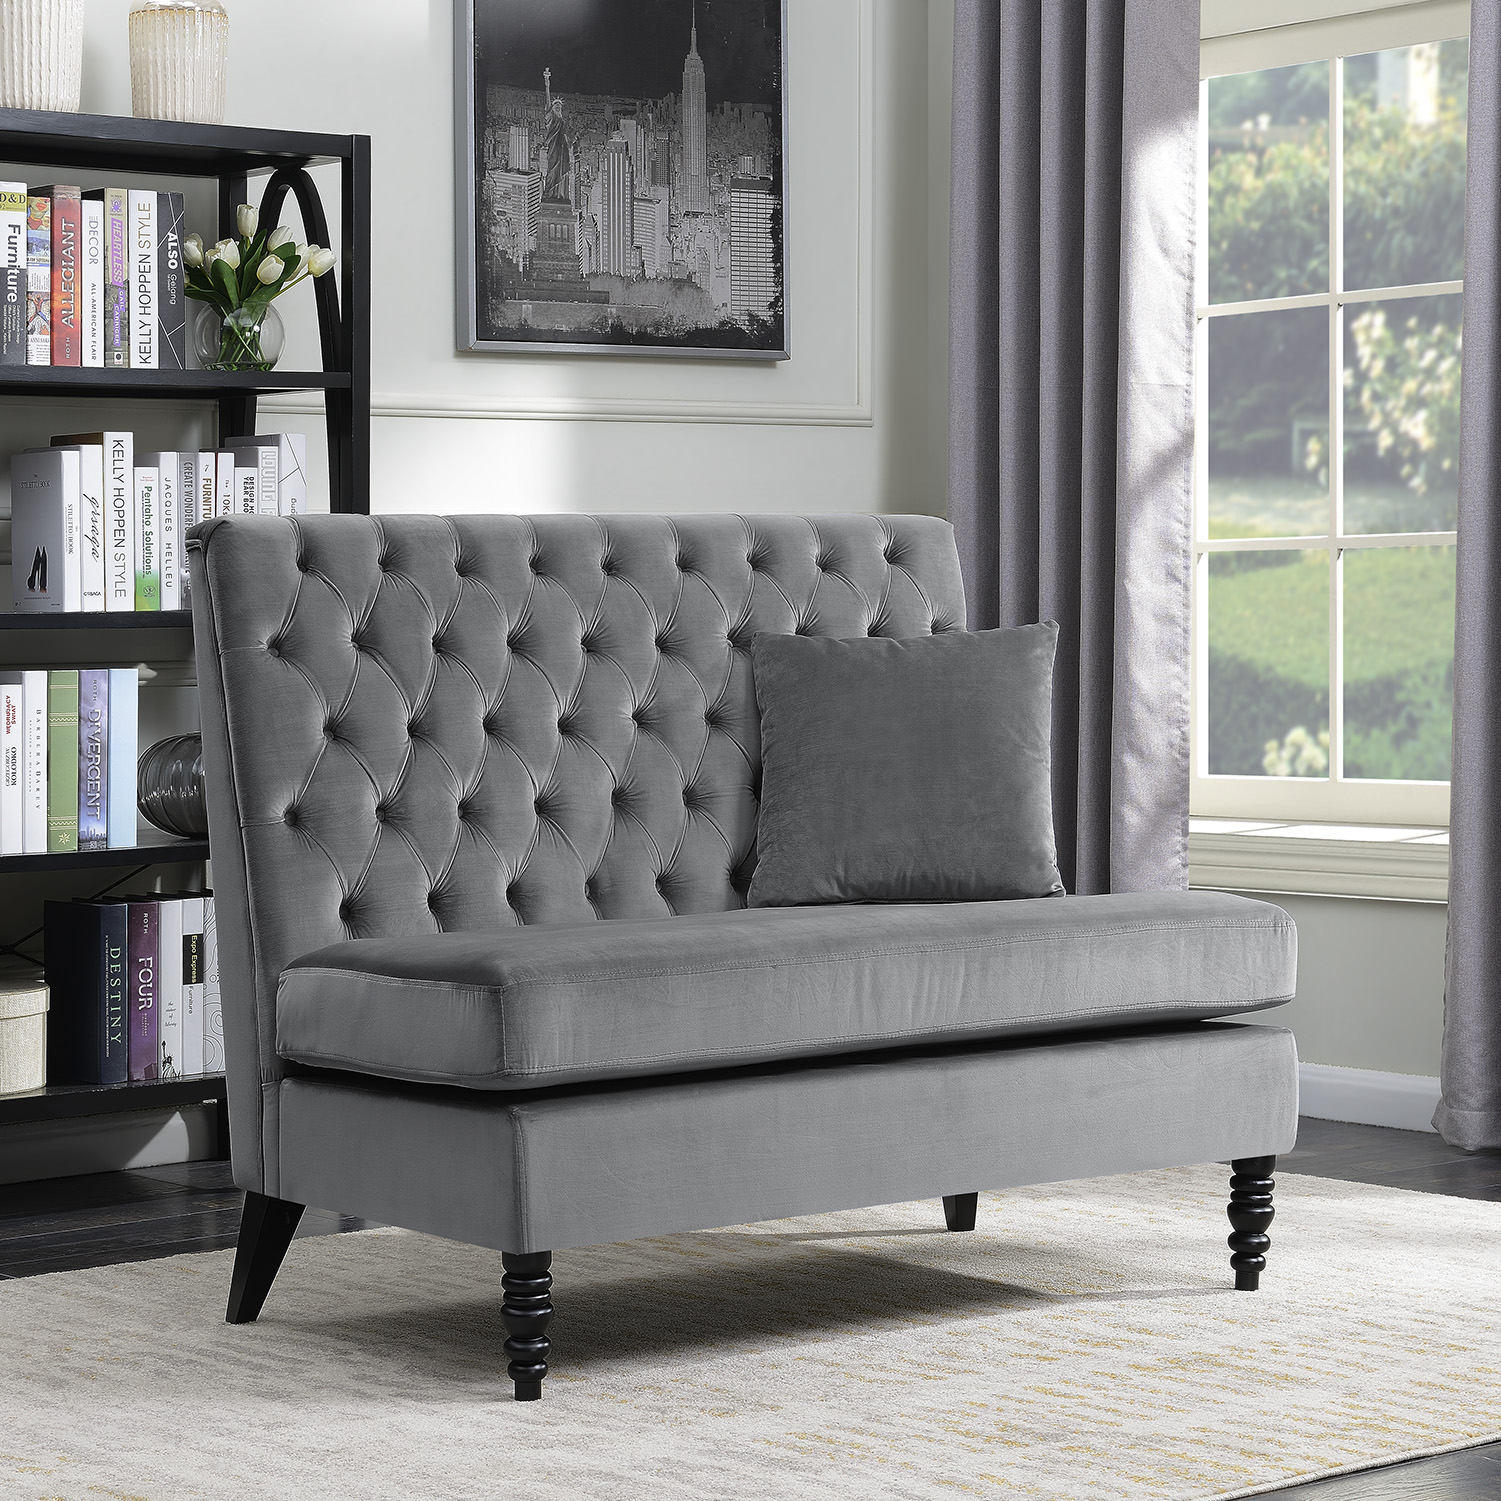 Picture of: New Modern Tufted Settee Bedroom Bench Sofa High Back Cushion Seat Fabric Velvet Ebay